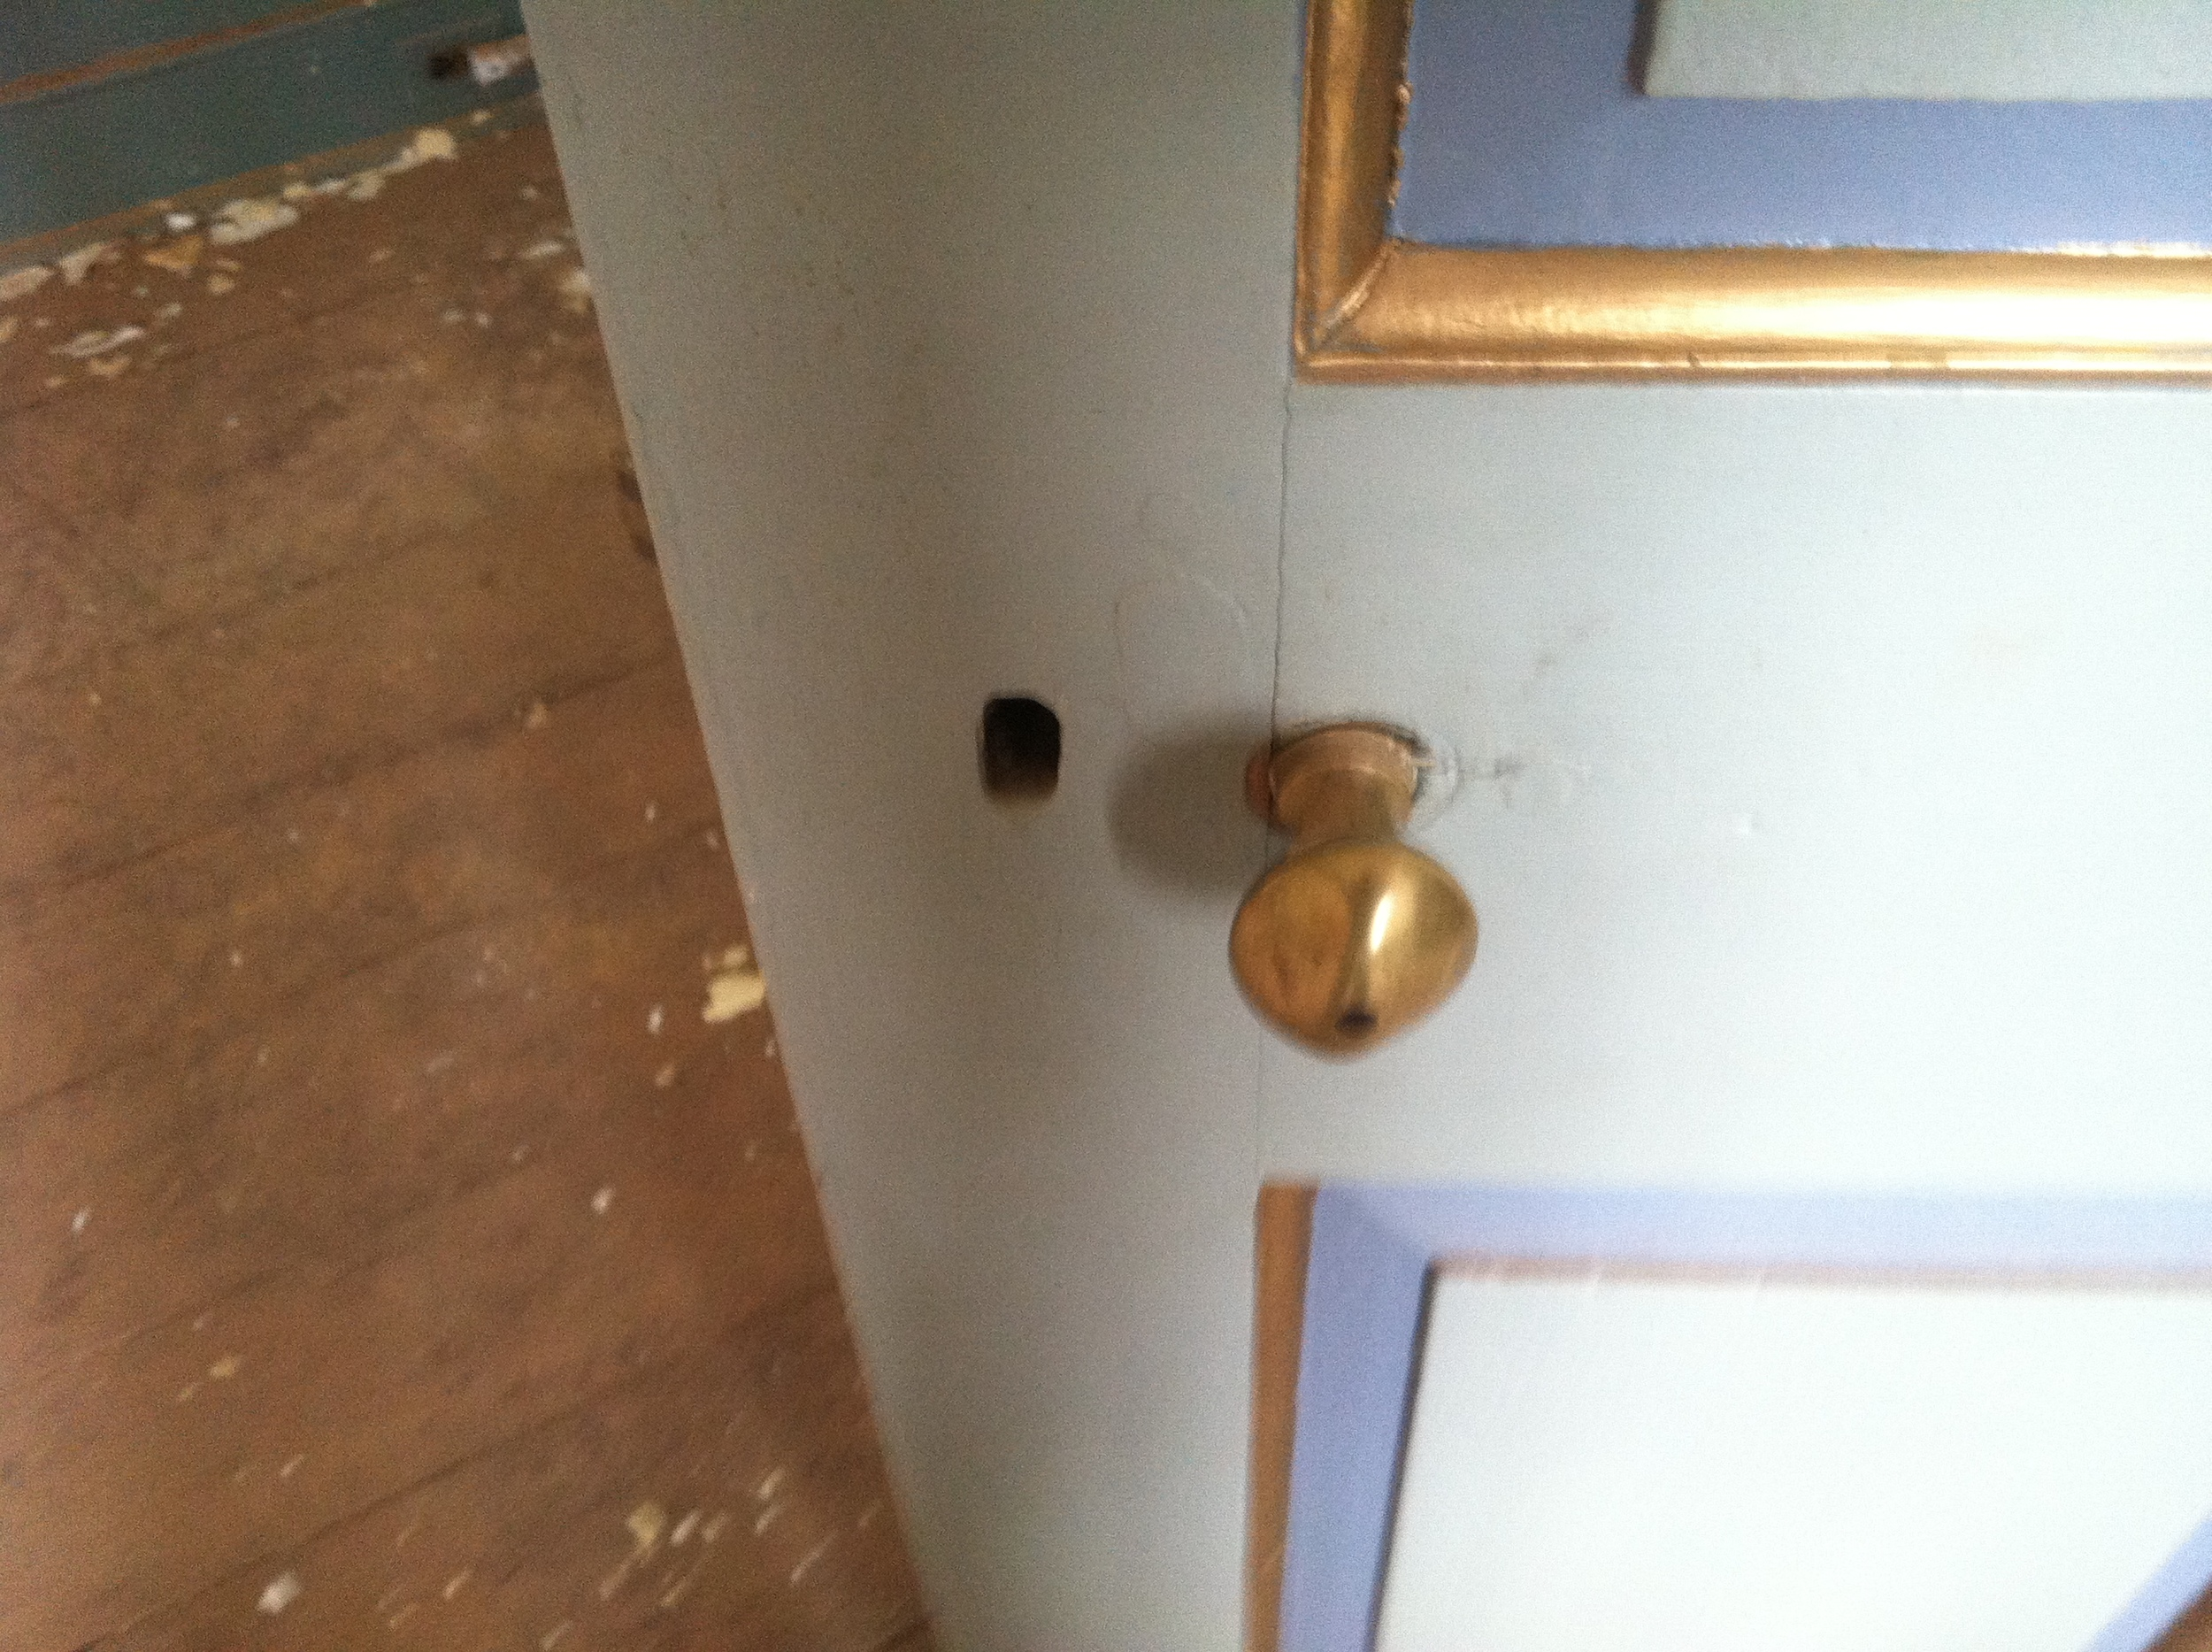 Yup!  The original doorknob from an earlier time when George Washington turned it to gain access to his quarters.